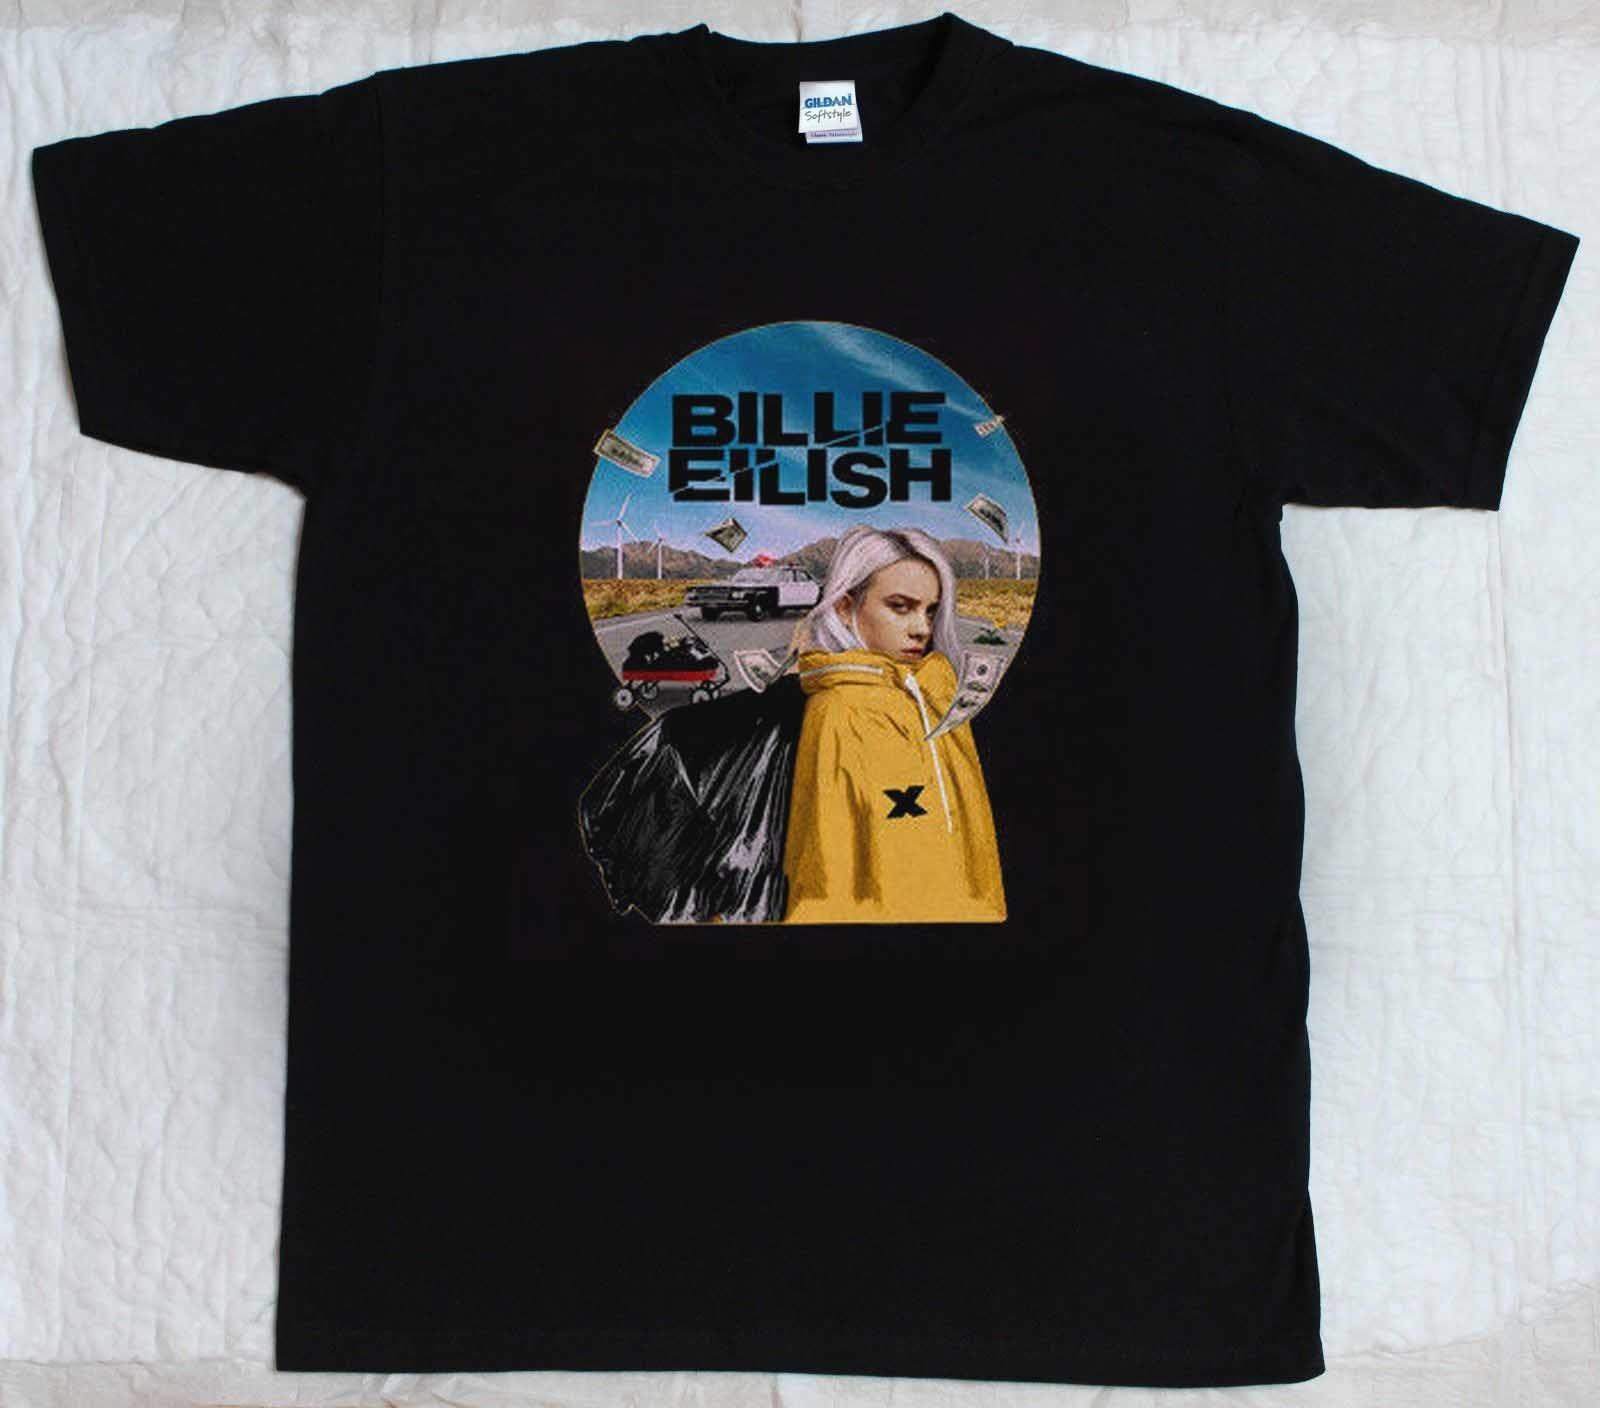 f9d9de57 New Limited Billie Eilish 1 By 1 Tour 2018 2019 Tee Tshirt S 3XL Coolest T  Shirts T Shirt Cool From Space84, $11.48| DHgate.Com